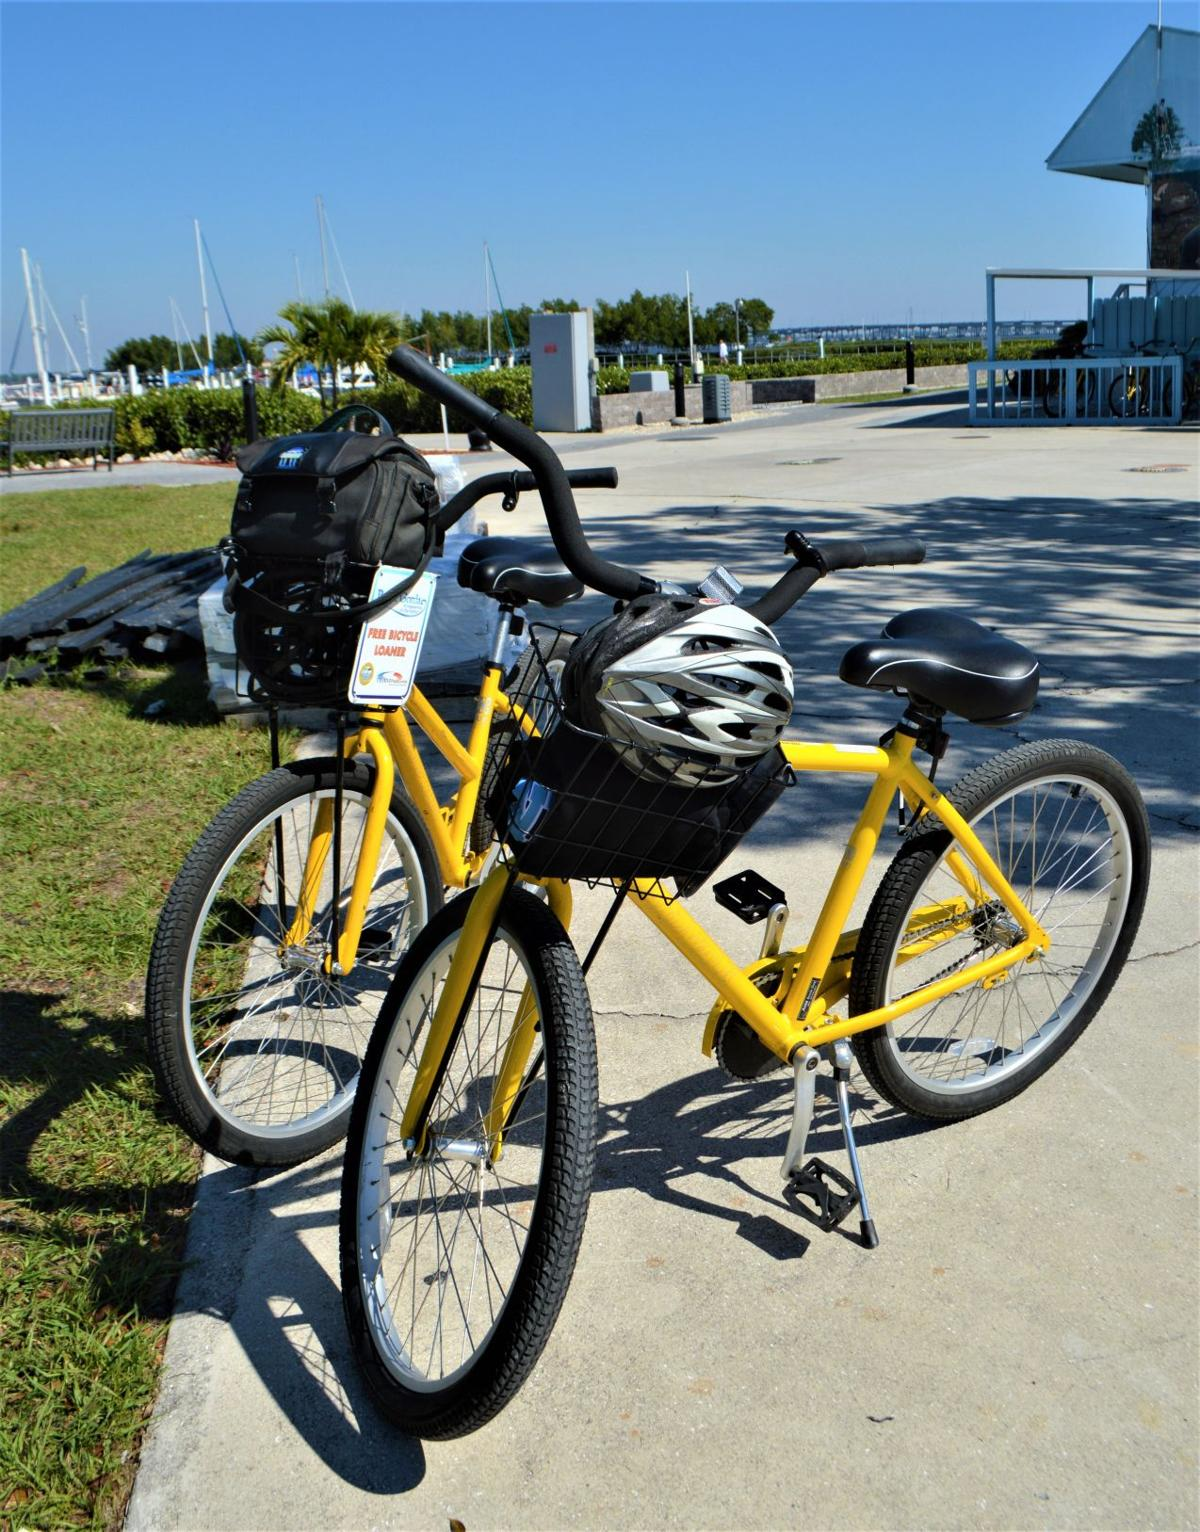 Experience Harborwalk from a bicycle